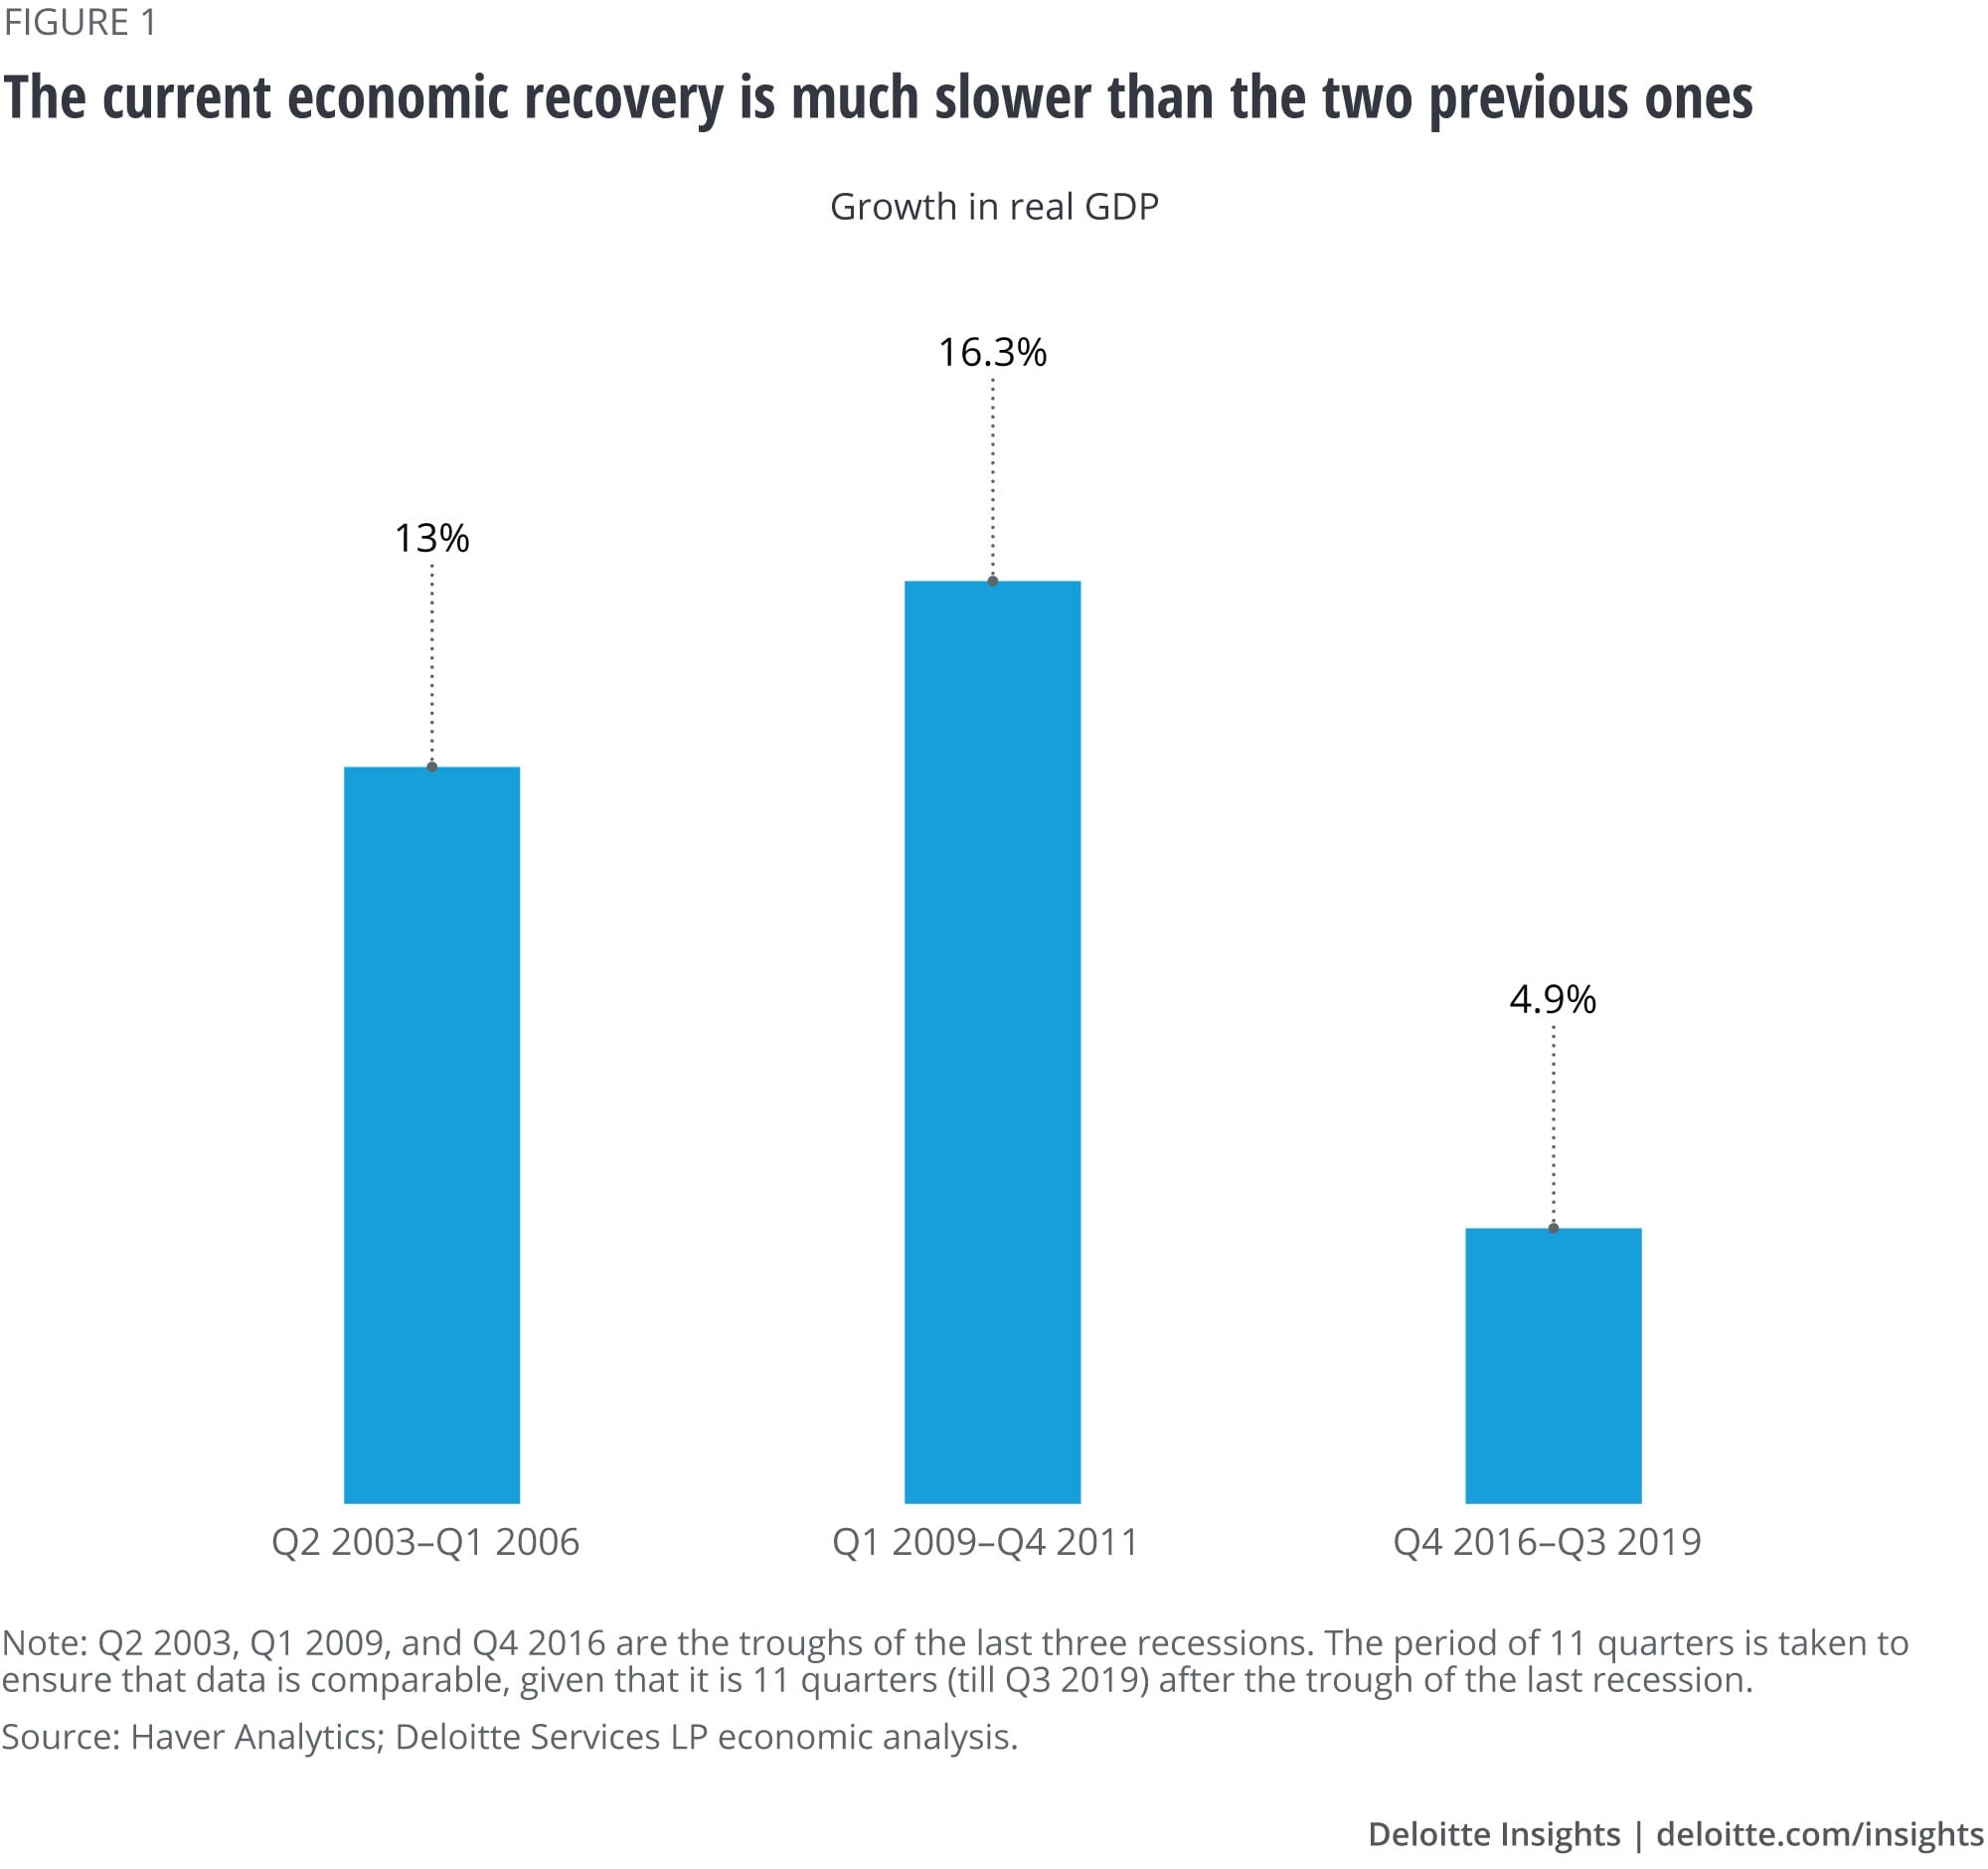 The current economic recovery is much slower than the two previous ones